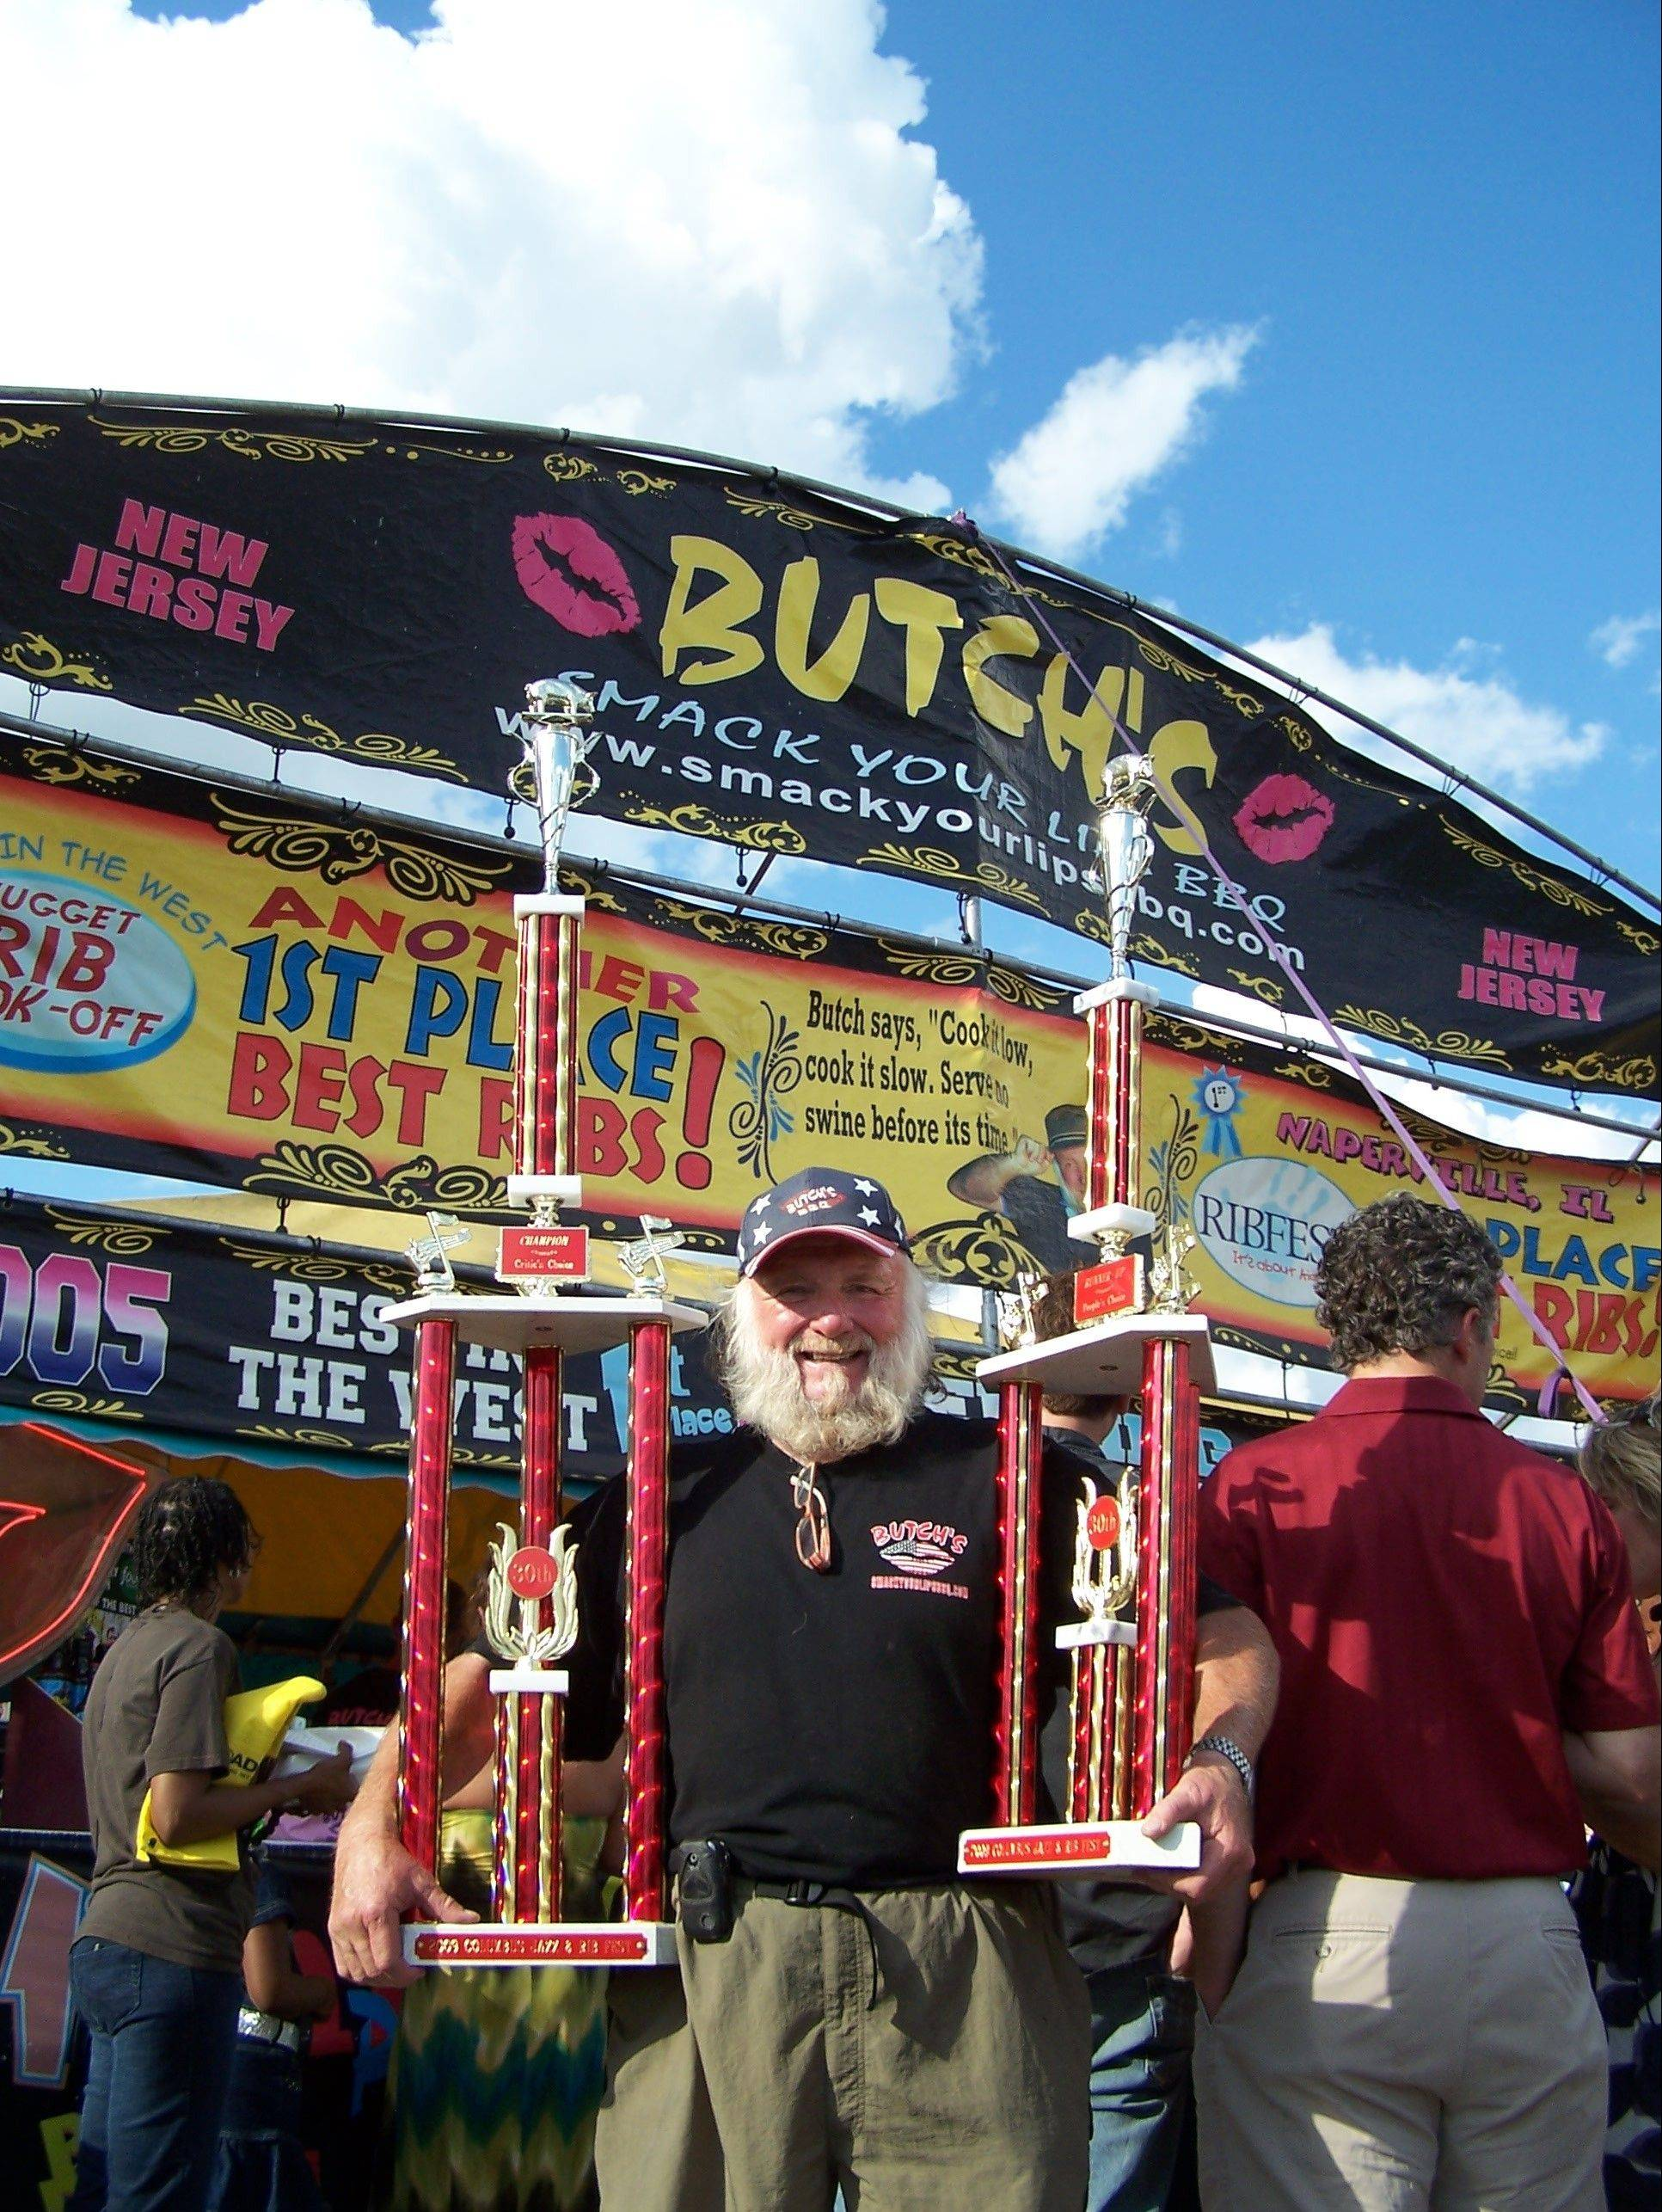 Alyson Lupinetti, Butch's Smack Your Lips BBQ, said she has some big shoes to fill -- those of her father, pictured in 2009, who started the business and won more than 600 awards in his career.